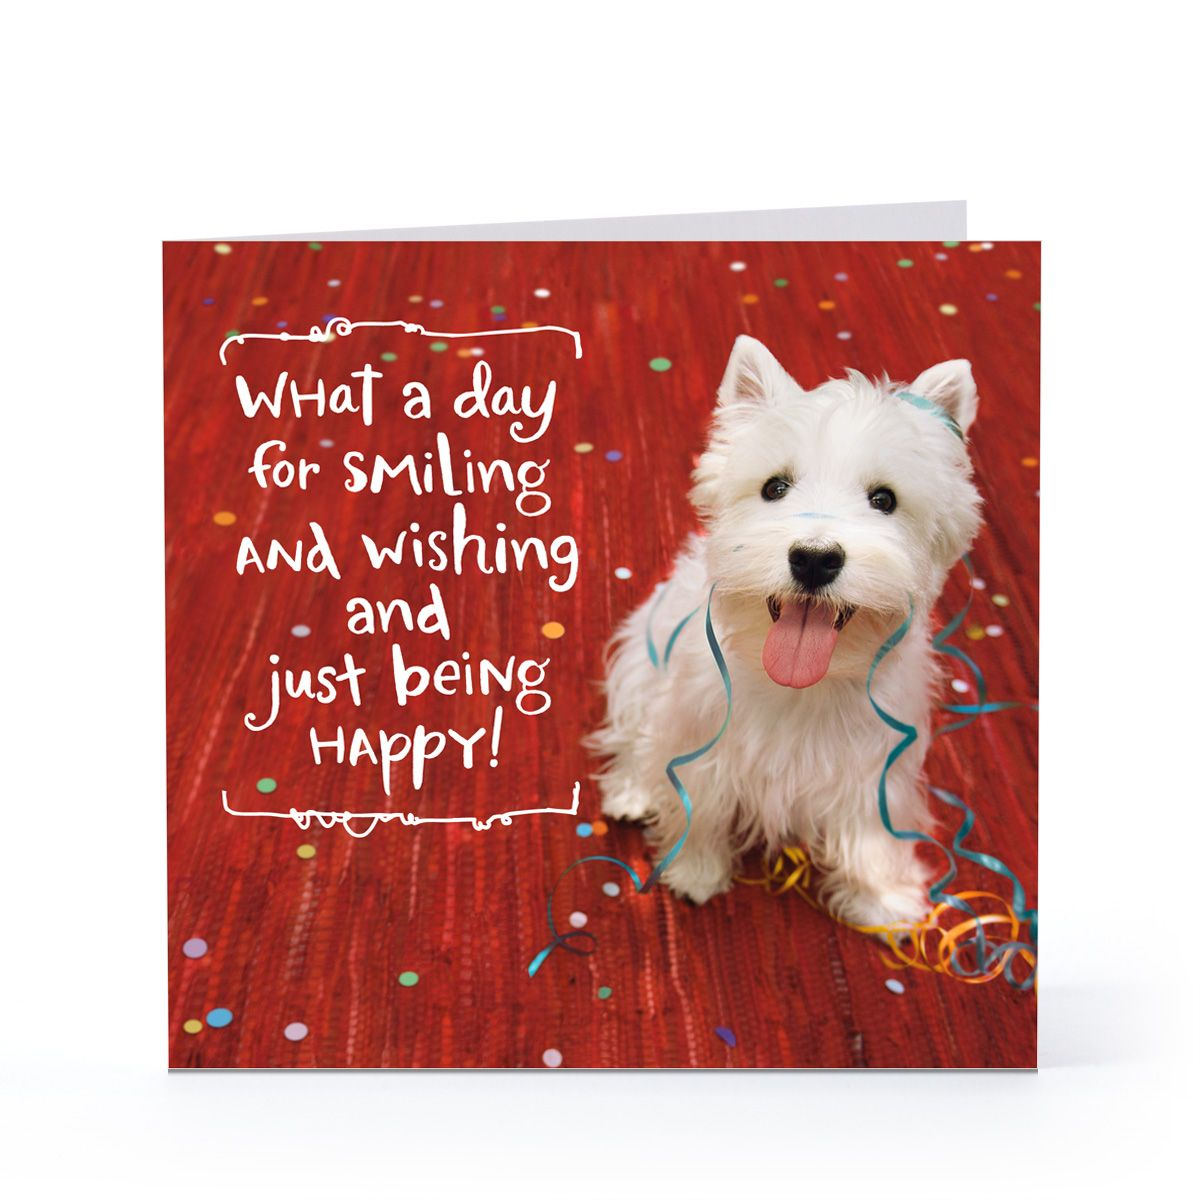 Birthday happy birthday cards with dogs birthday invitation birthday happy birthday cards with dogs birthday invitation examples kristyandbryce Choice Image